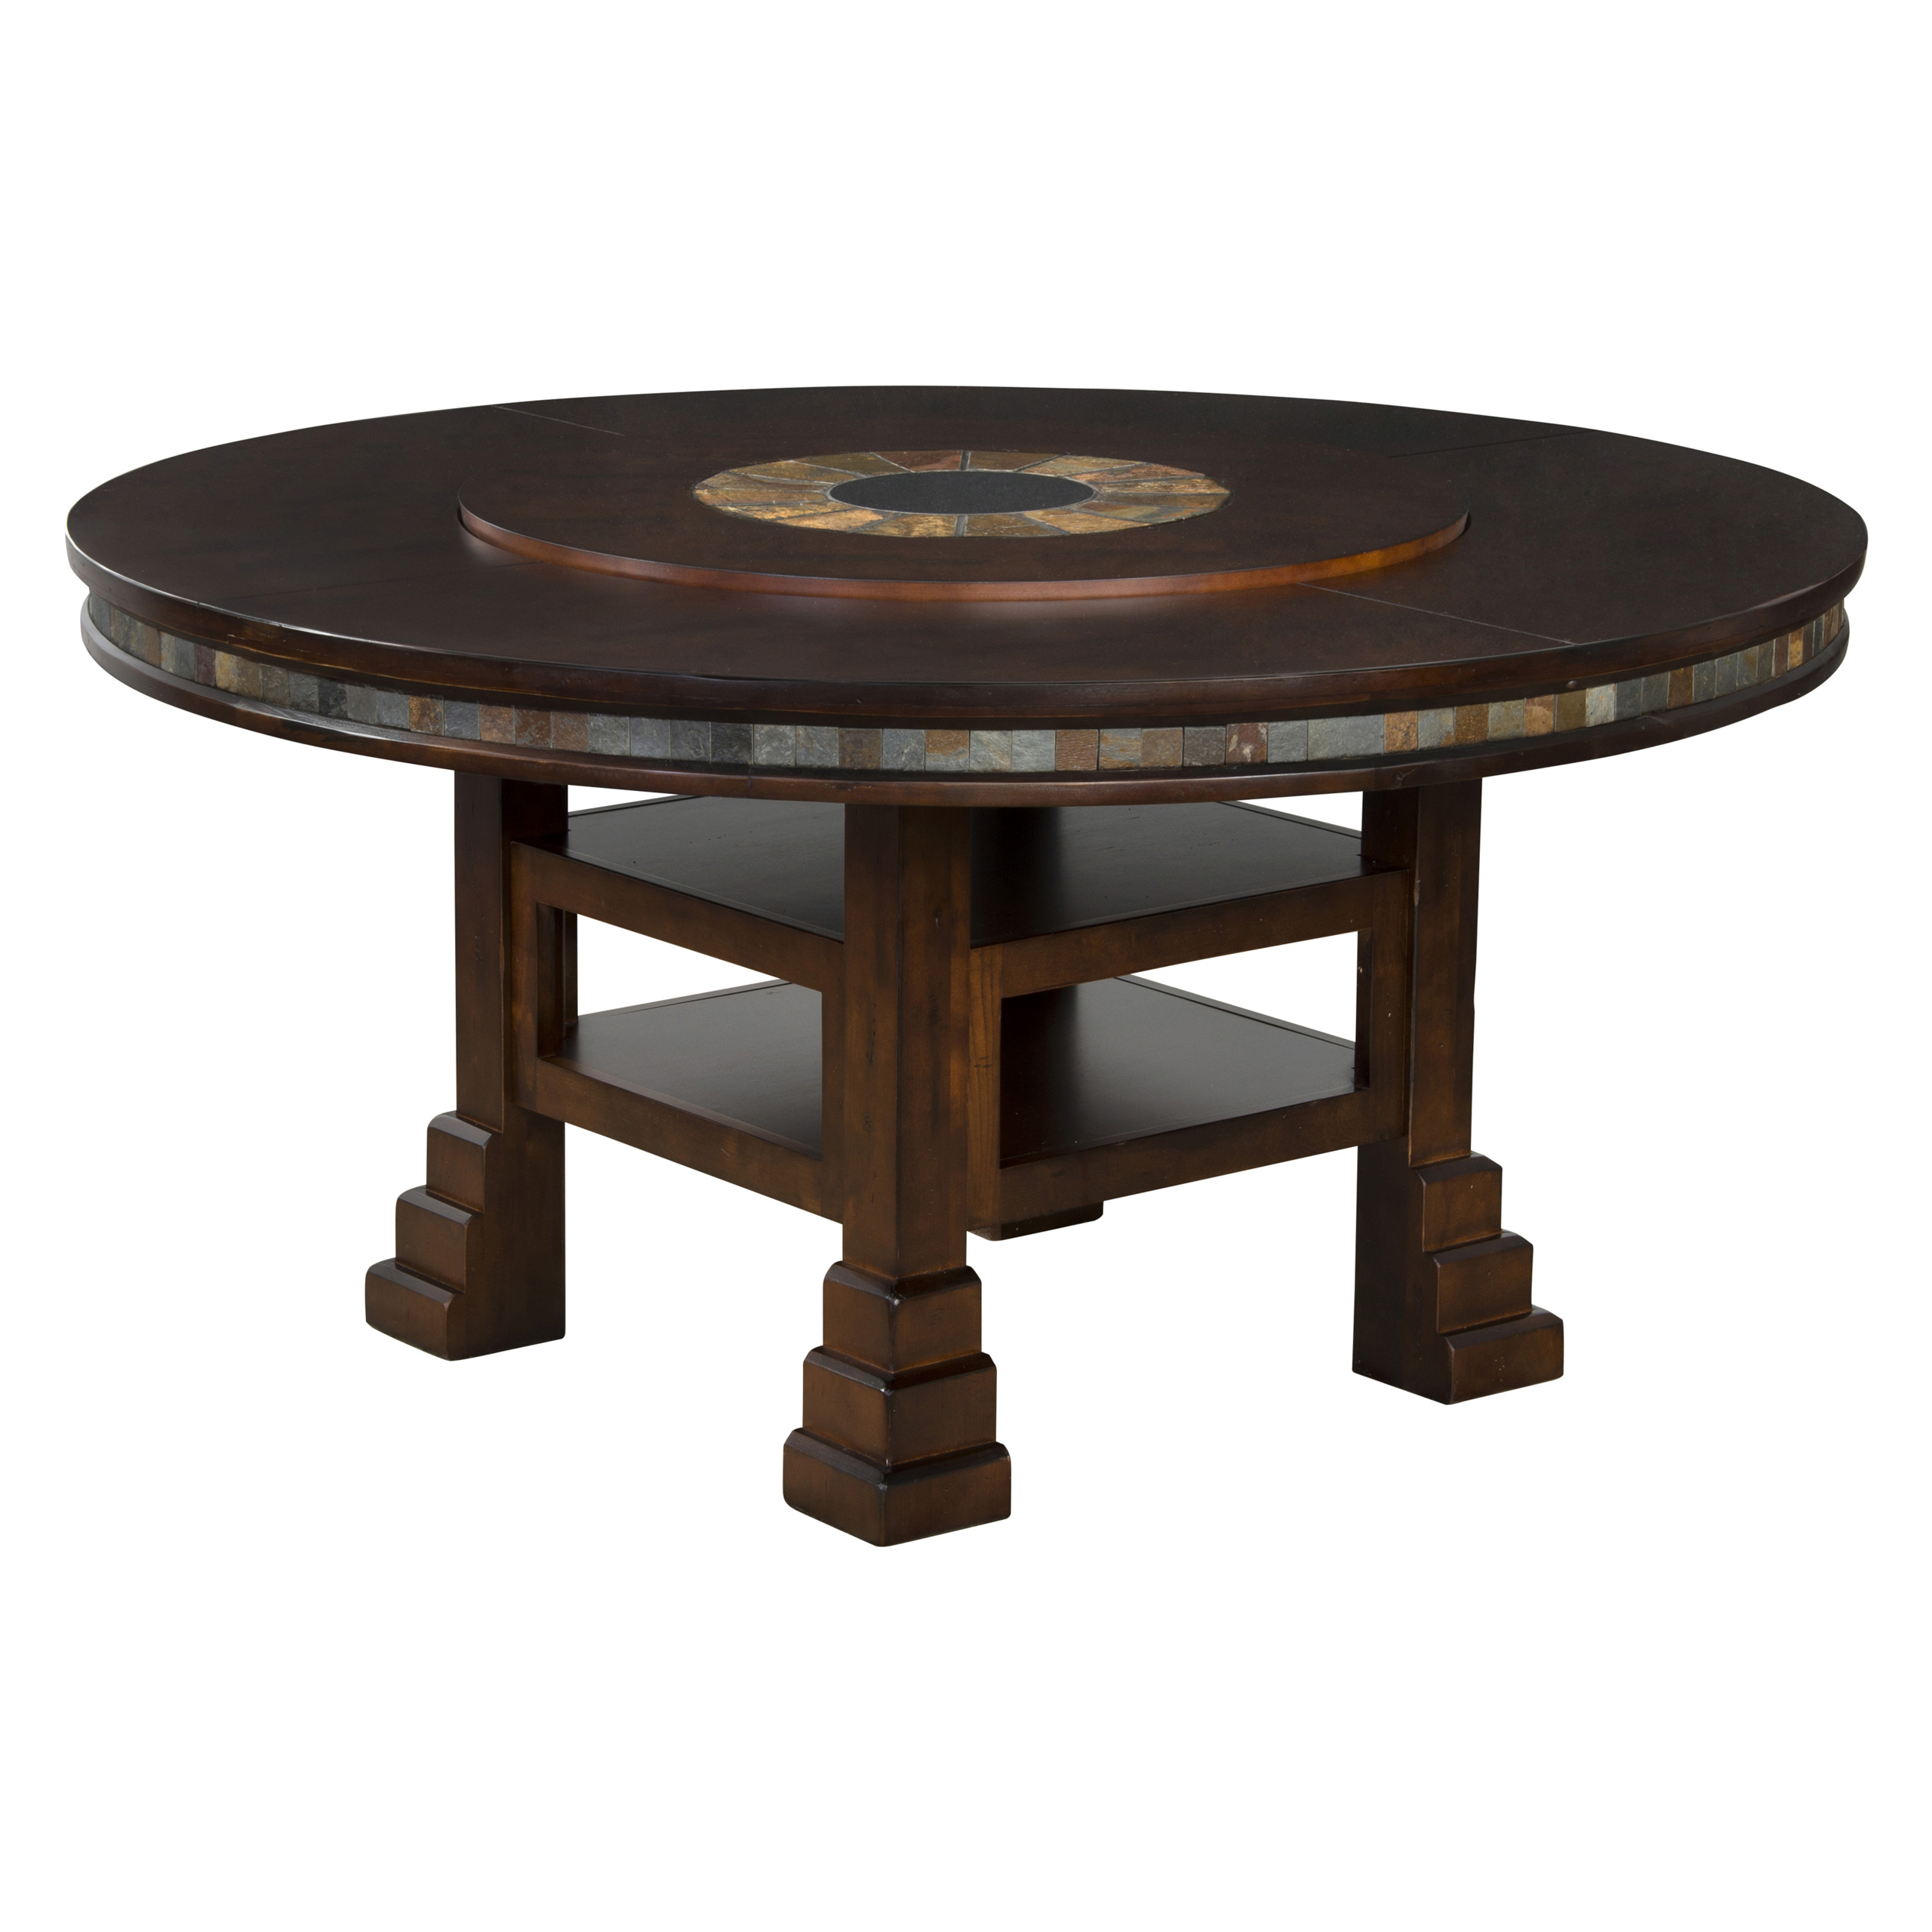 Sunny Designs Santa Fe Round Table With Lazy Susan, 60 Inch